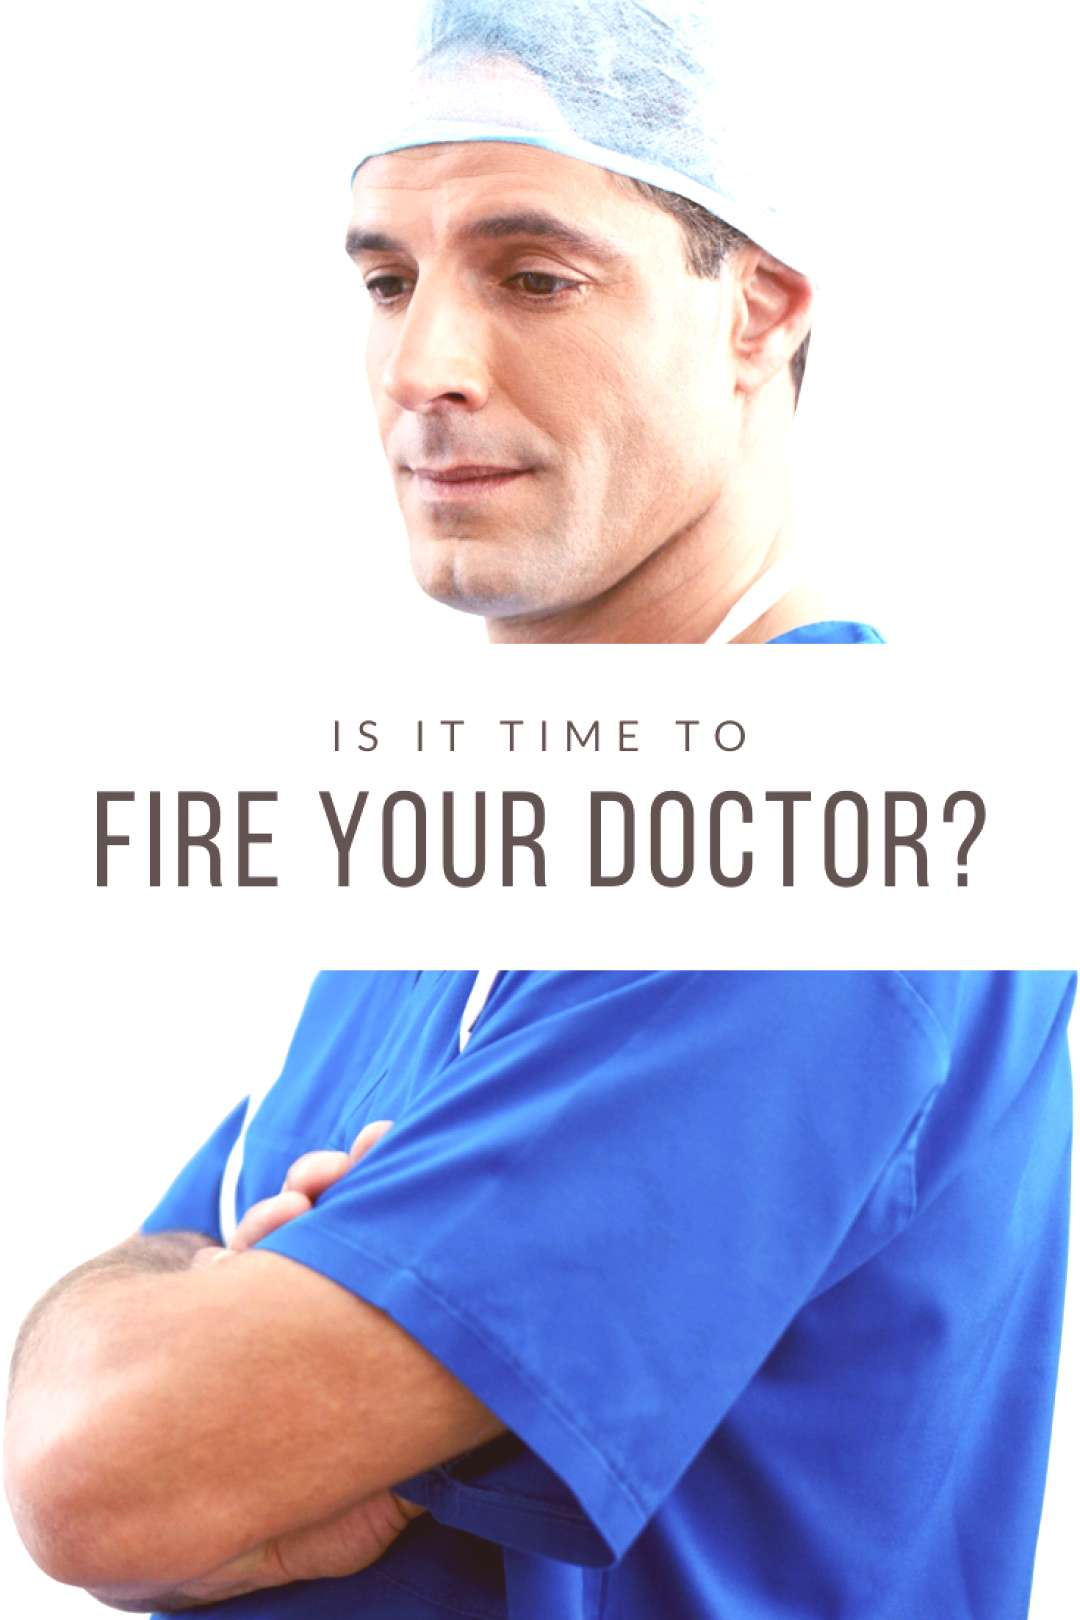 Don't Stay with A Doctor Who Isn't A Good Fit How can you tell it's time to get a new doctor? Read